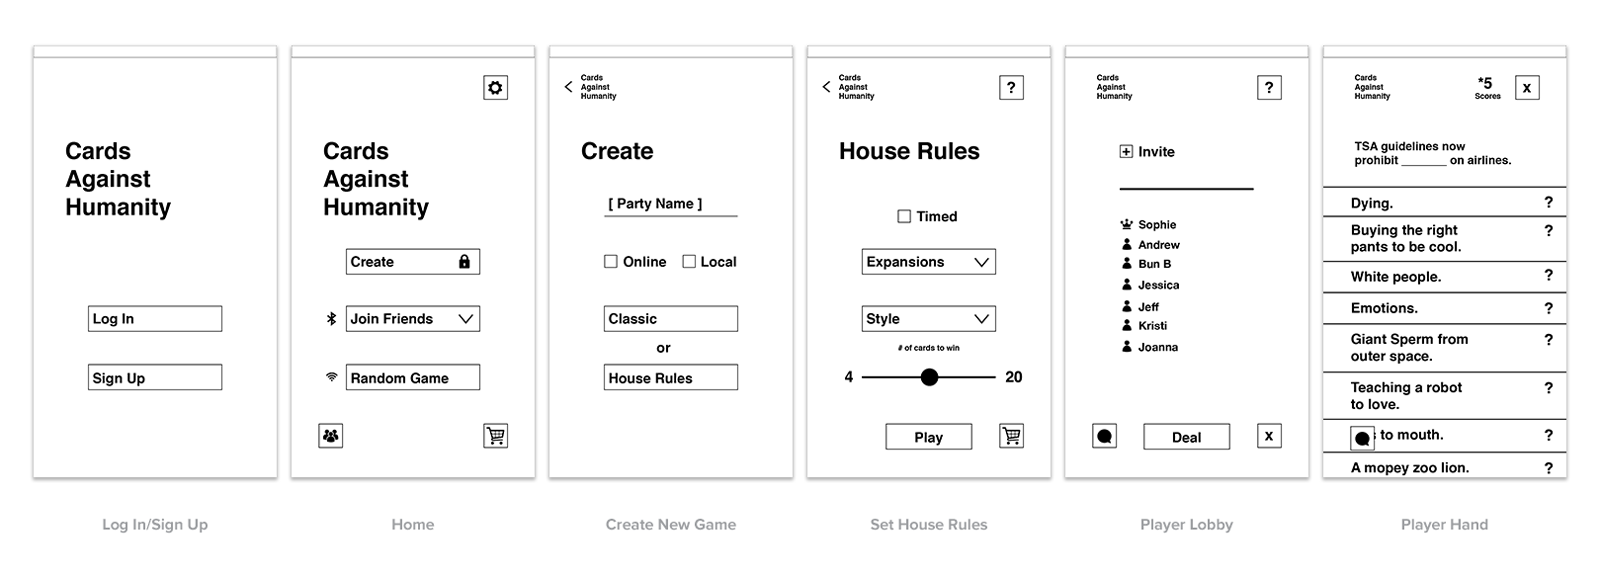 cards-against-humanity_midfi-wireframes.png